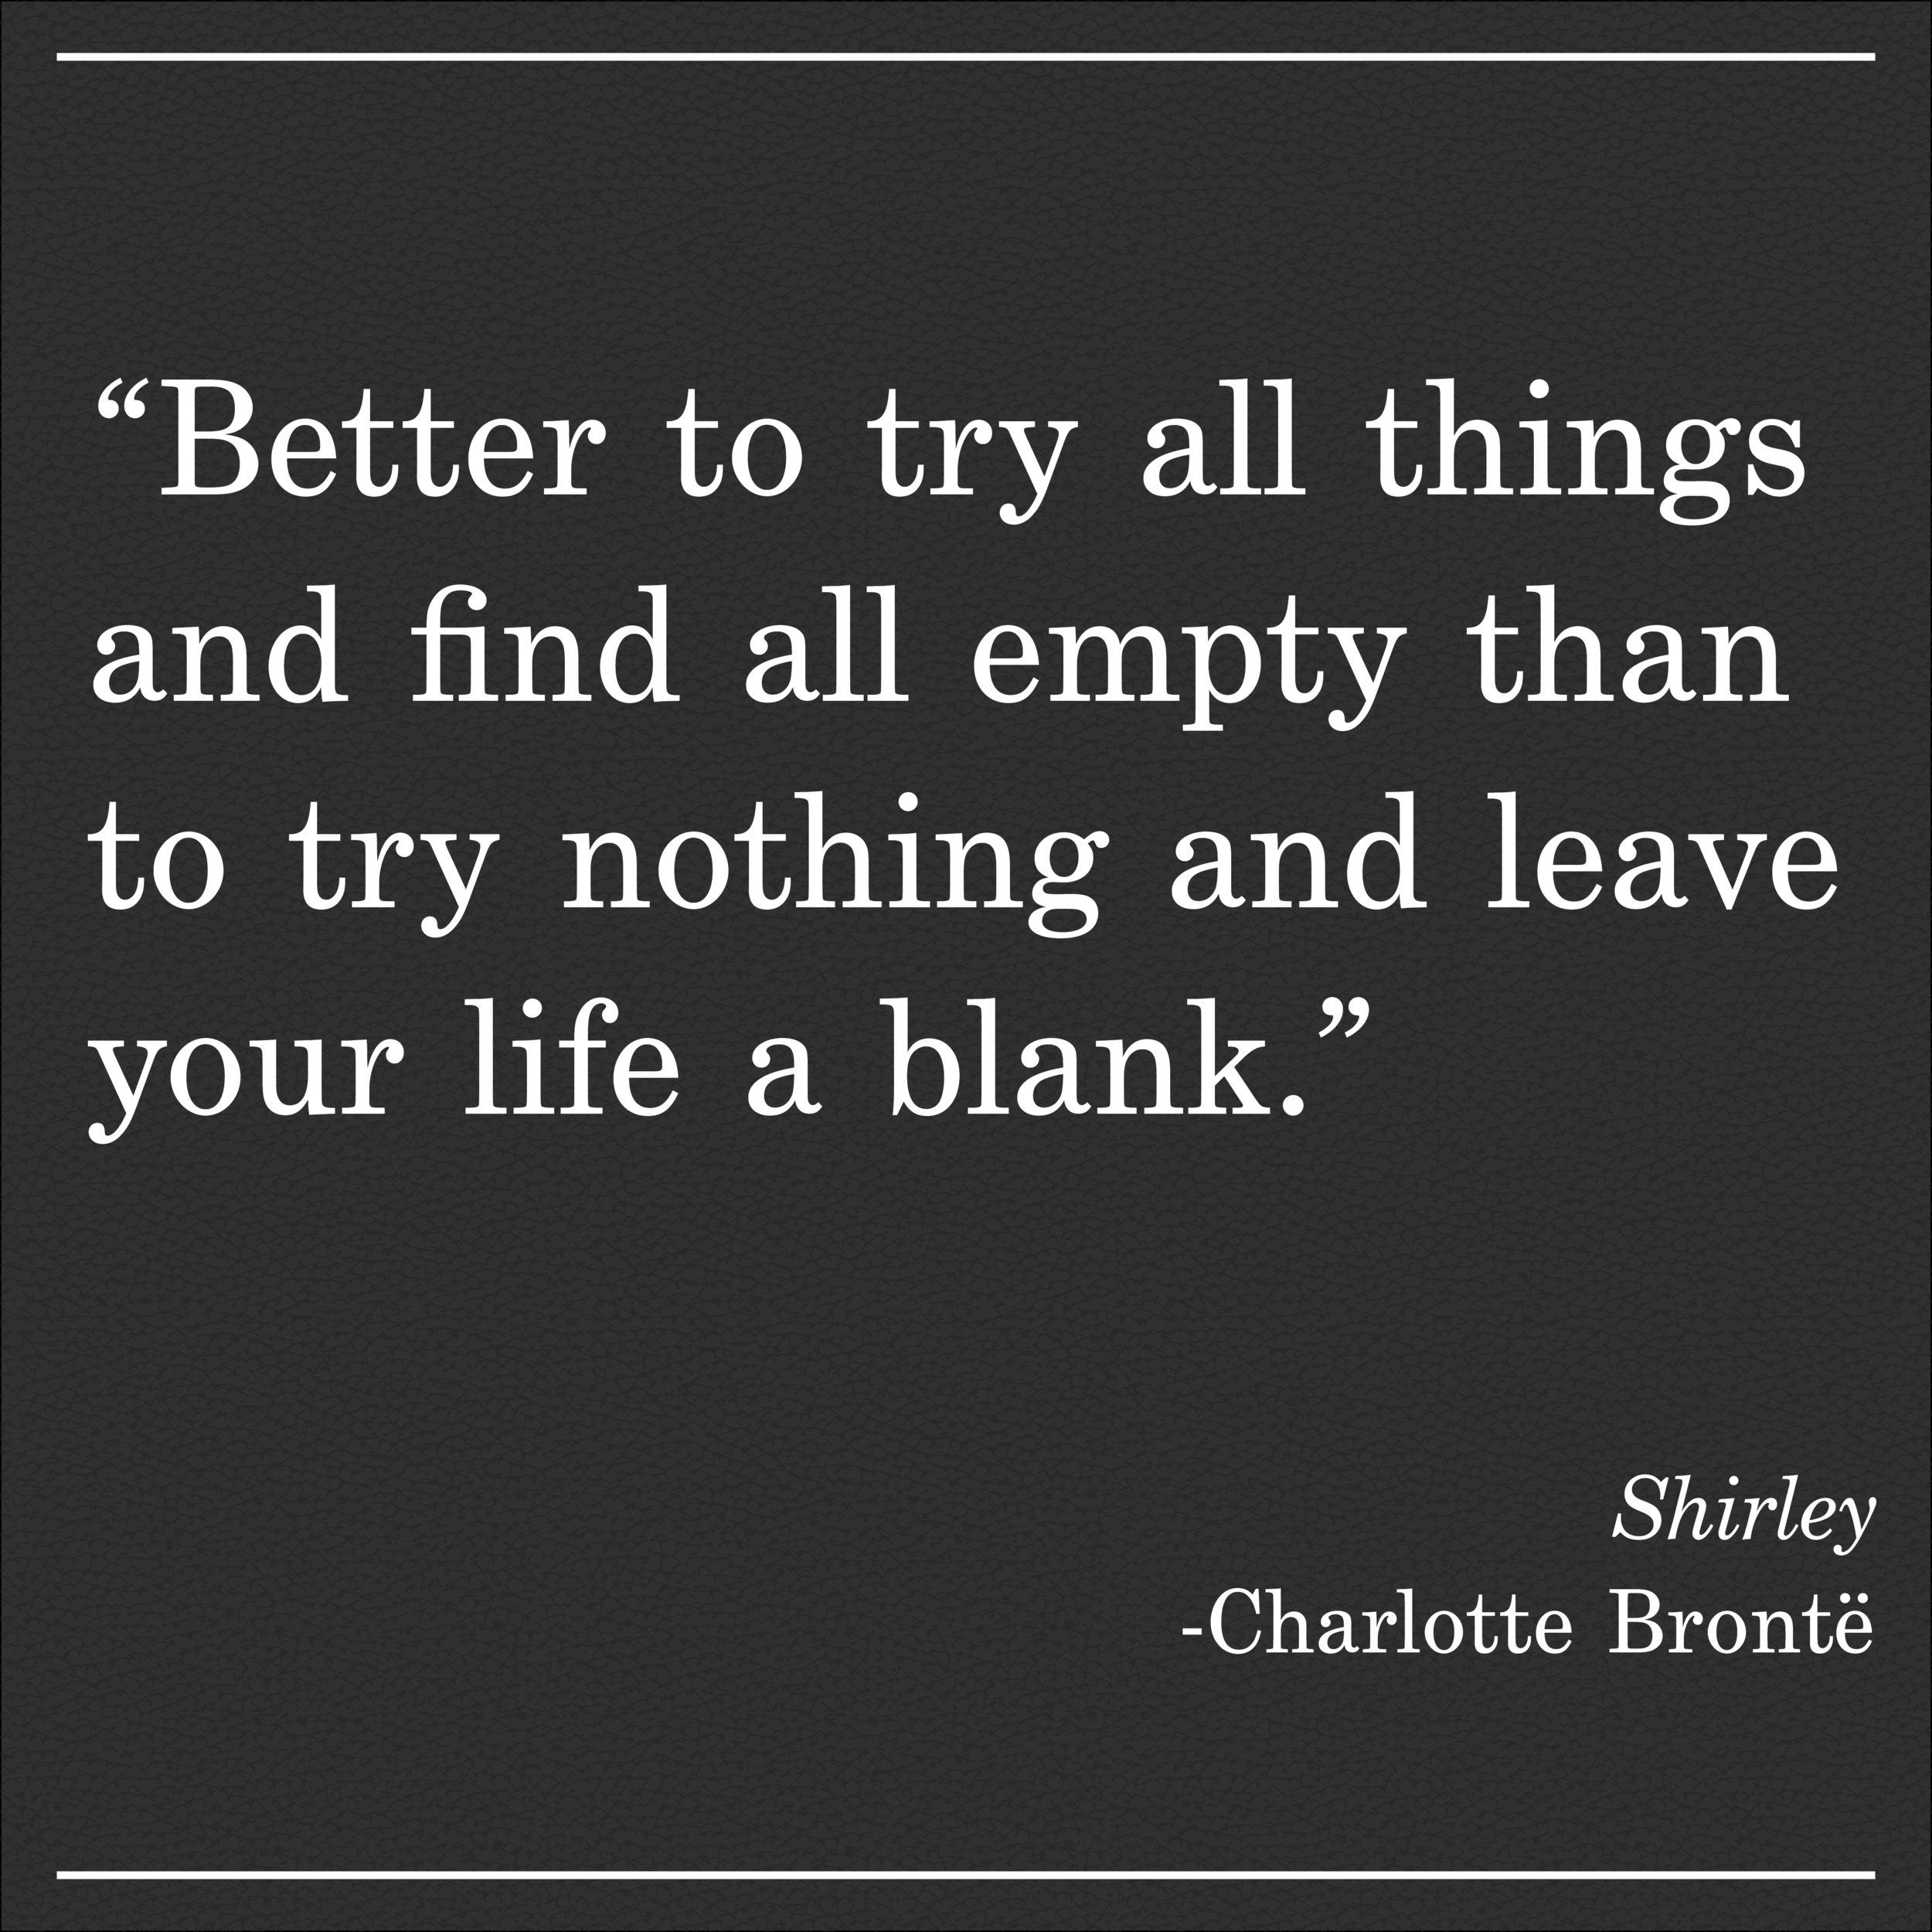 Daily Quote Shirley by Charlotte Bronte